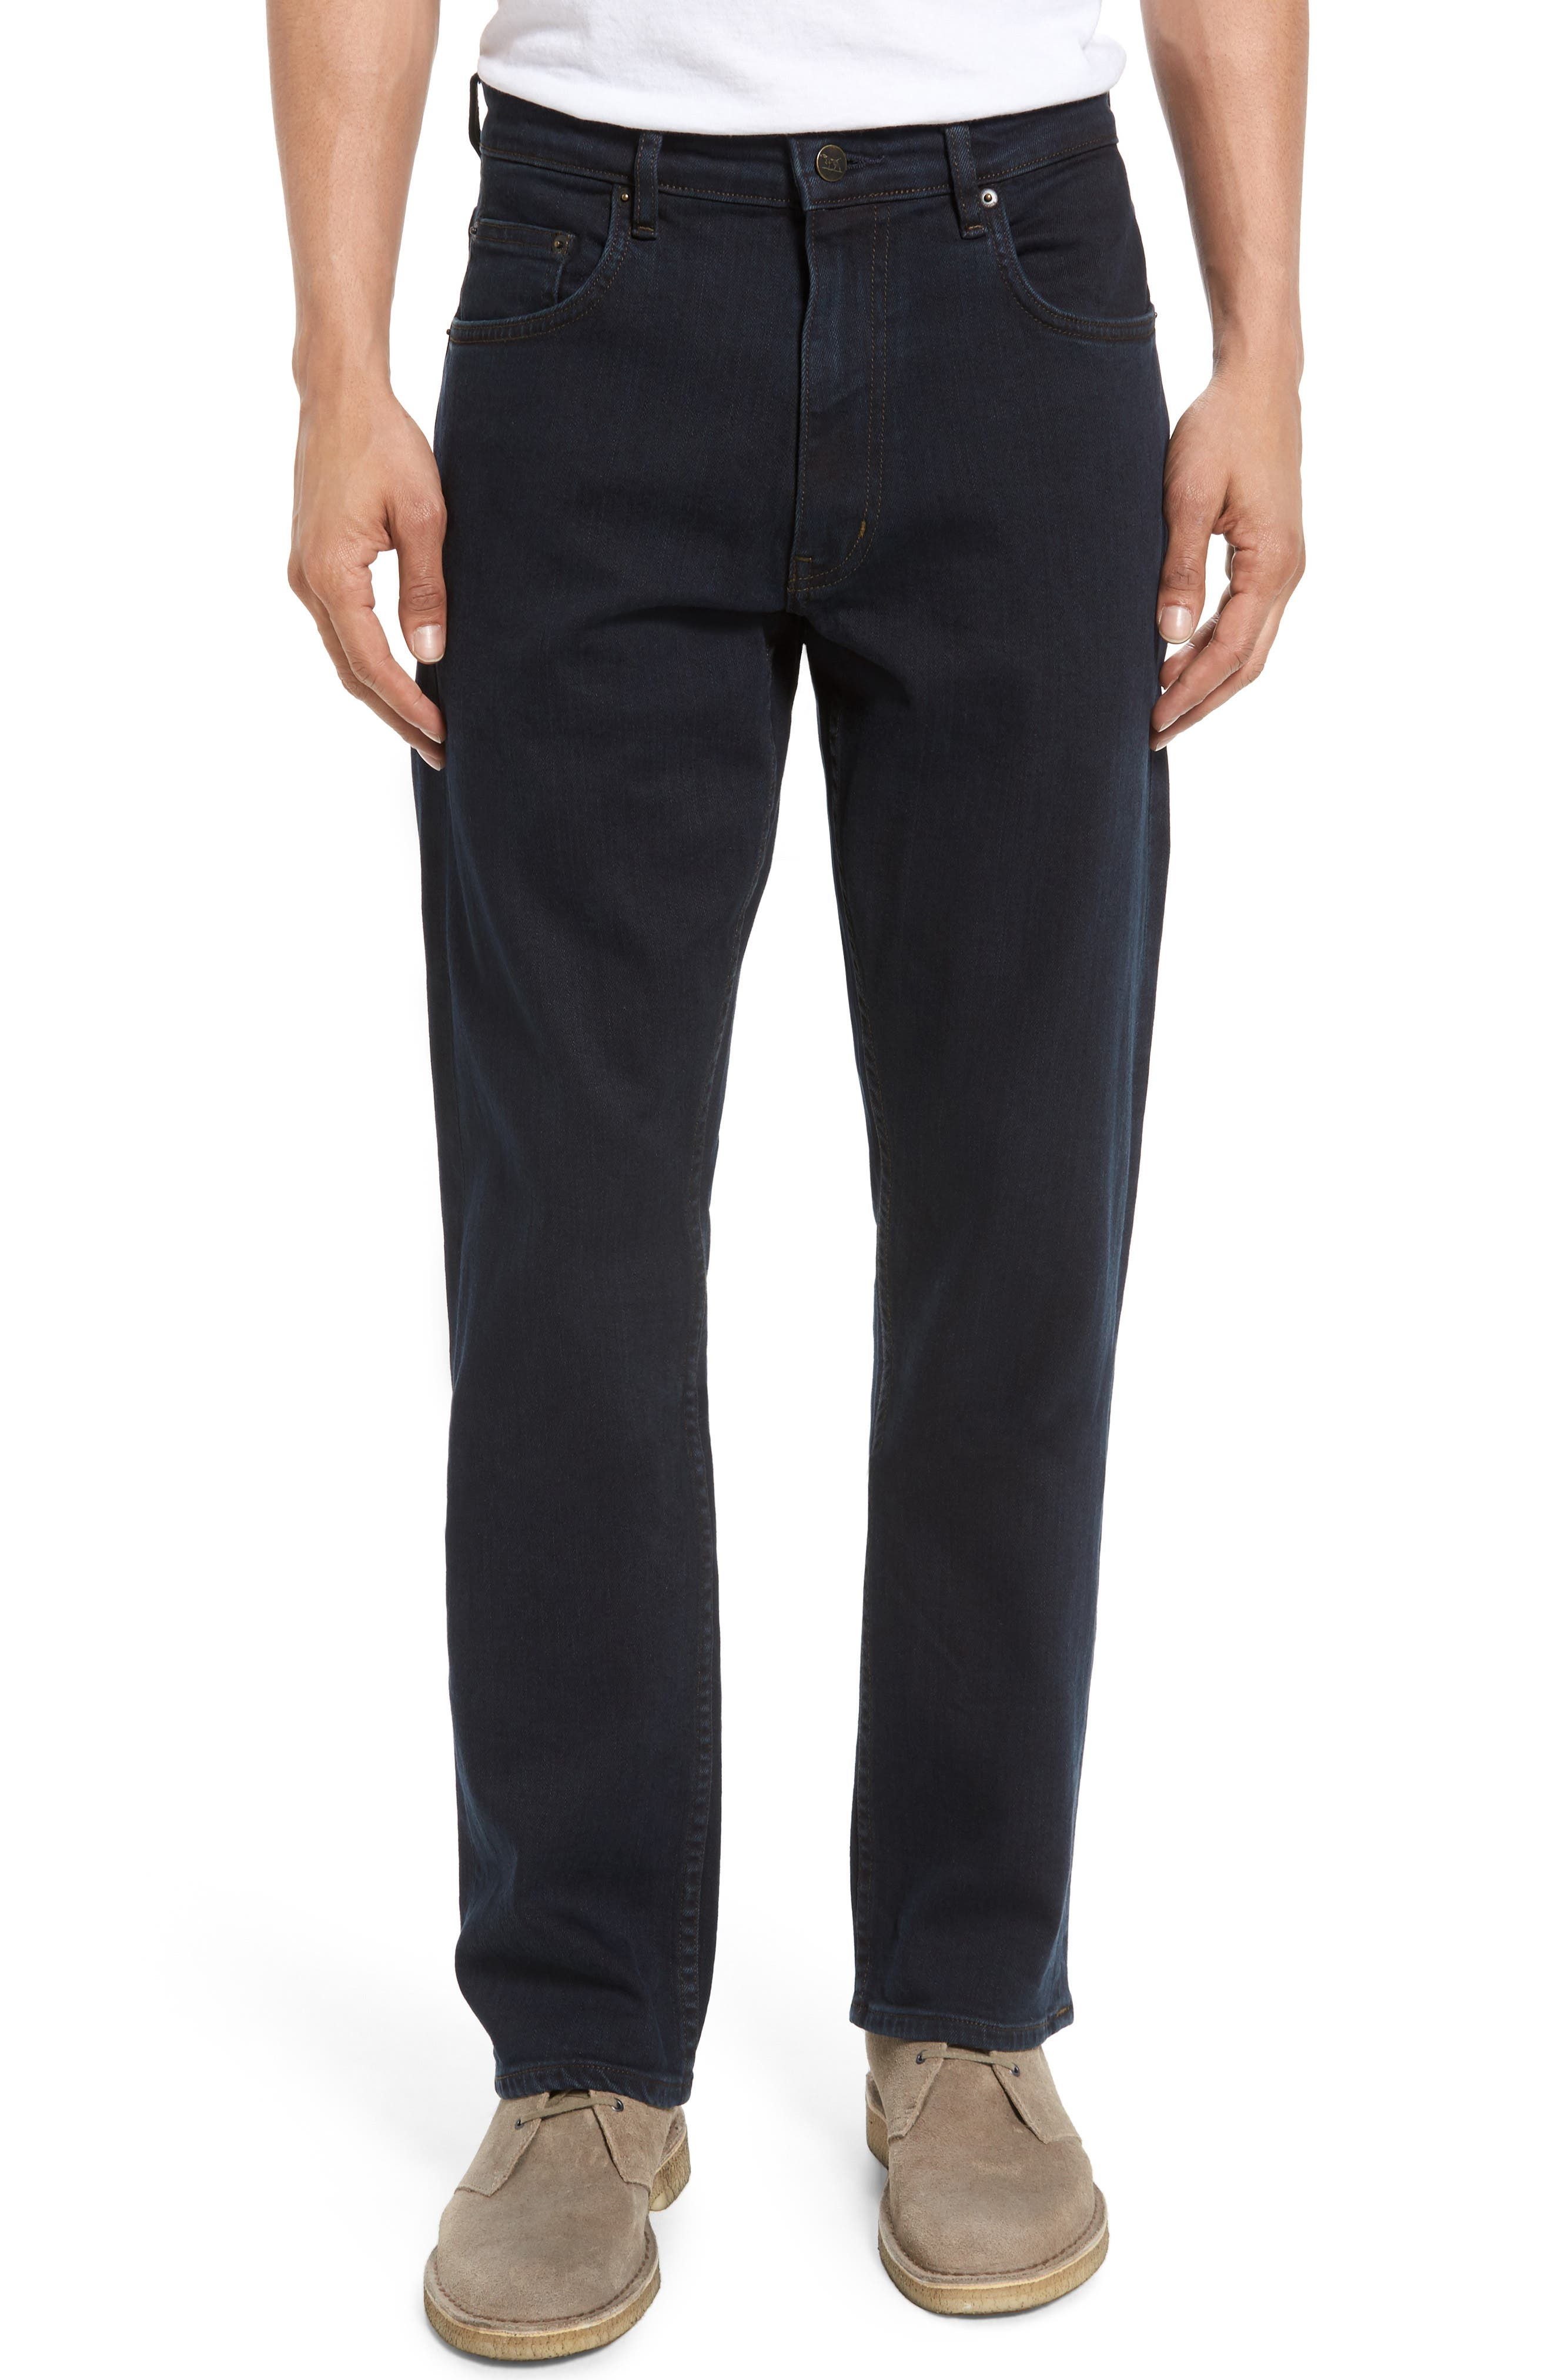 Cobham Relaxed Fit Jeans,                         Main,                         color, Blue Black